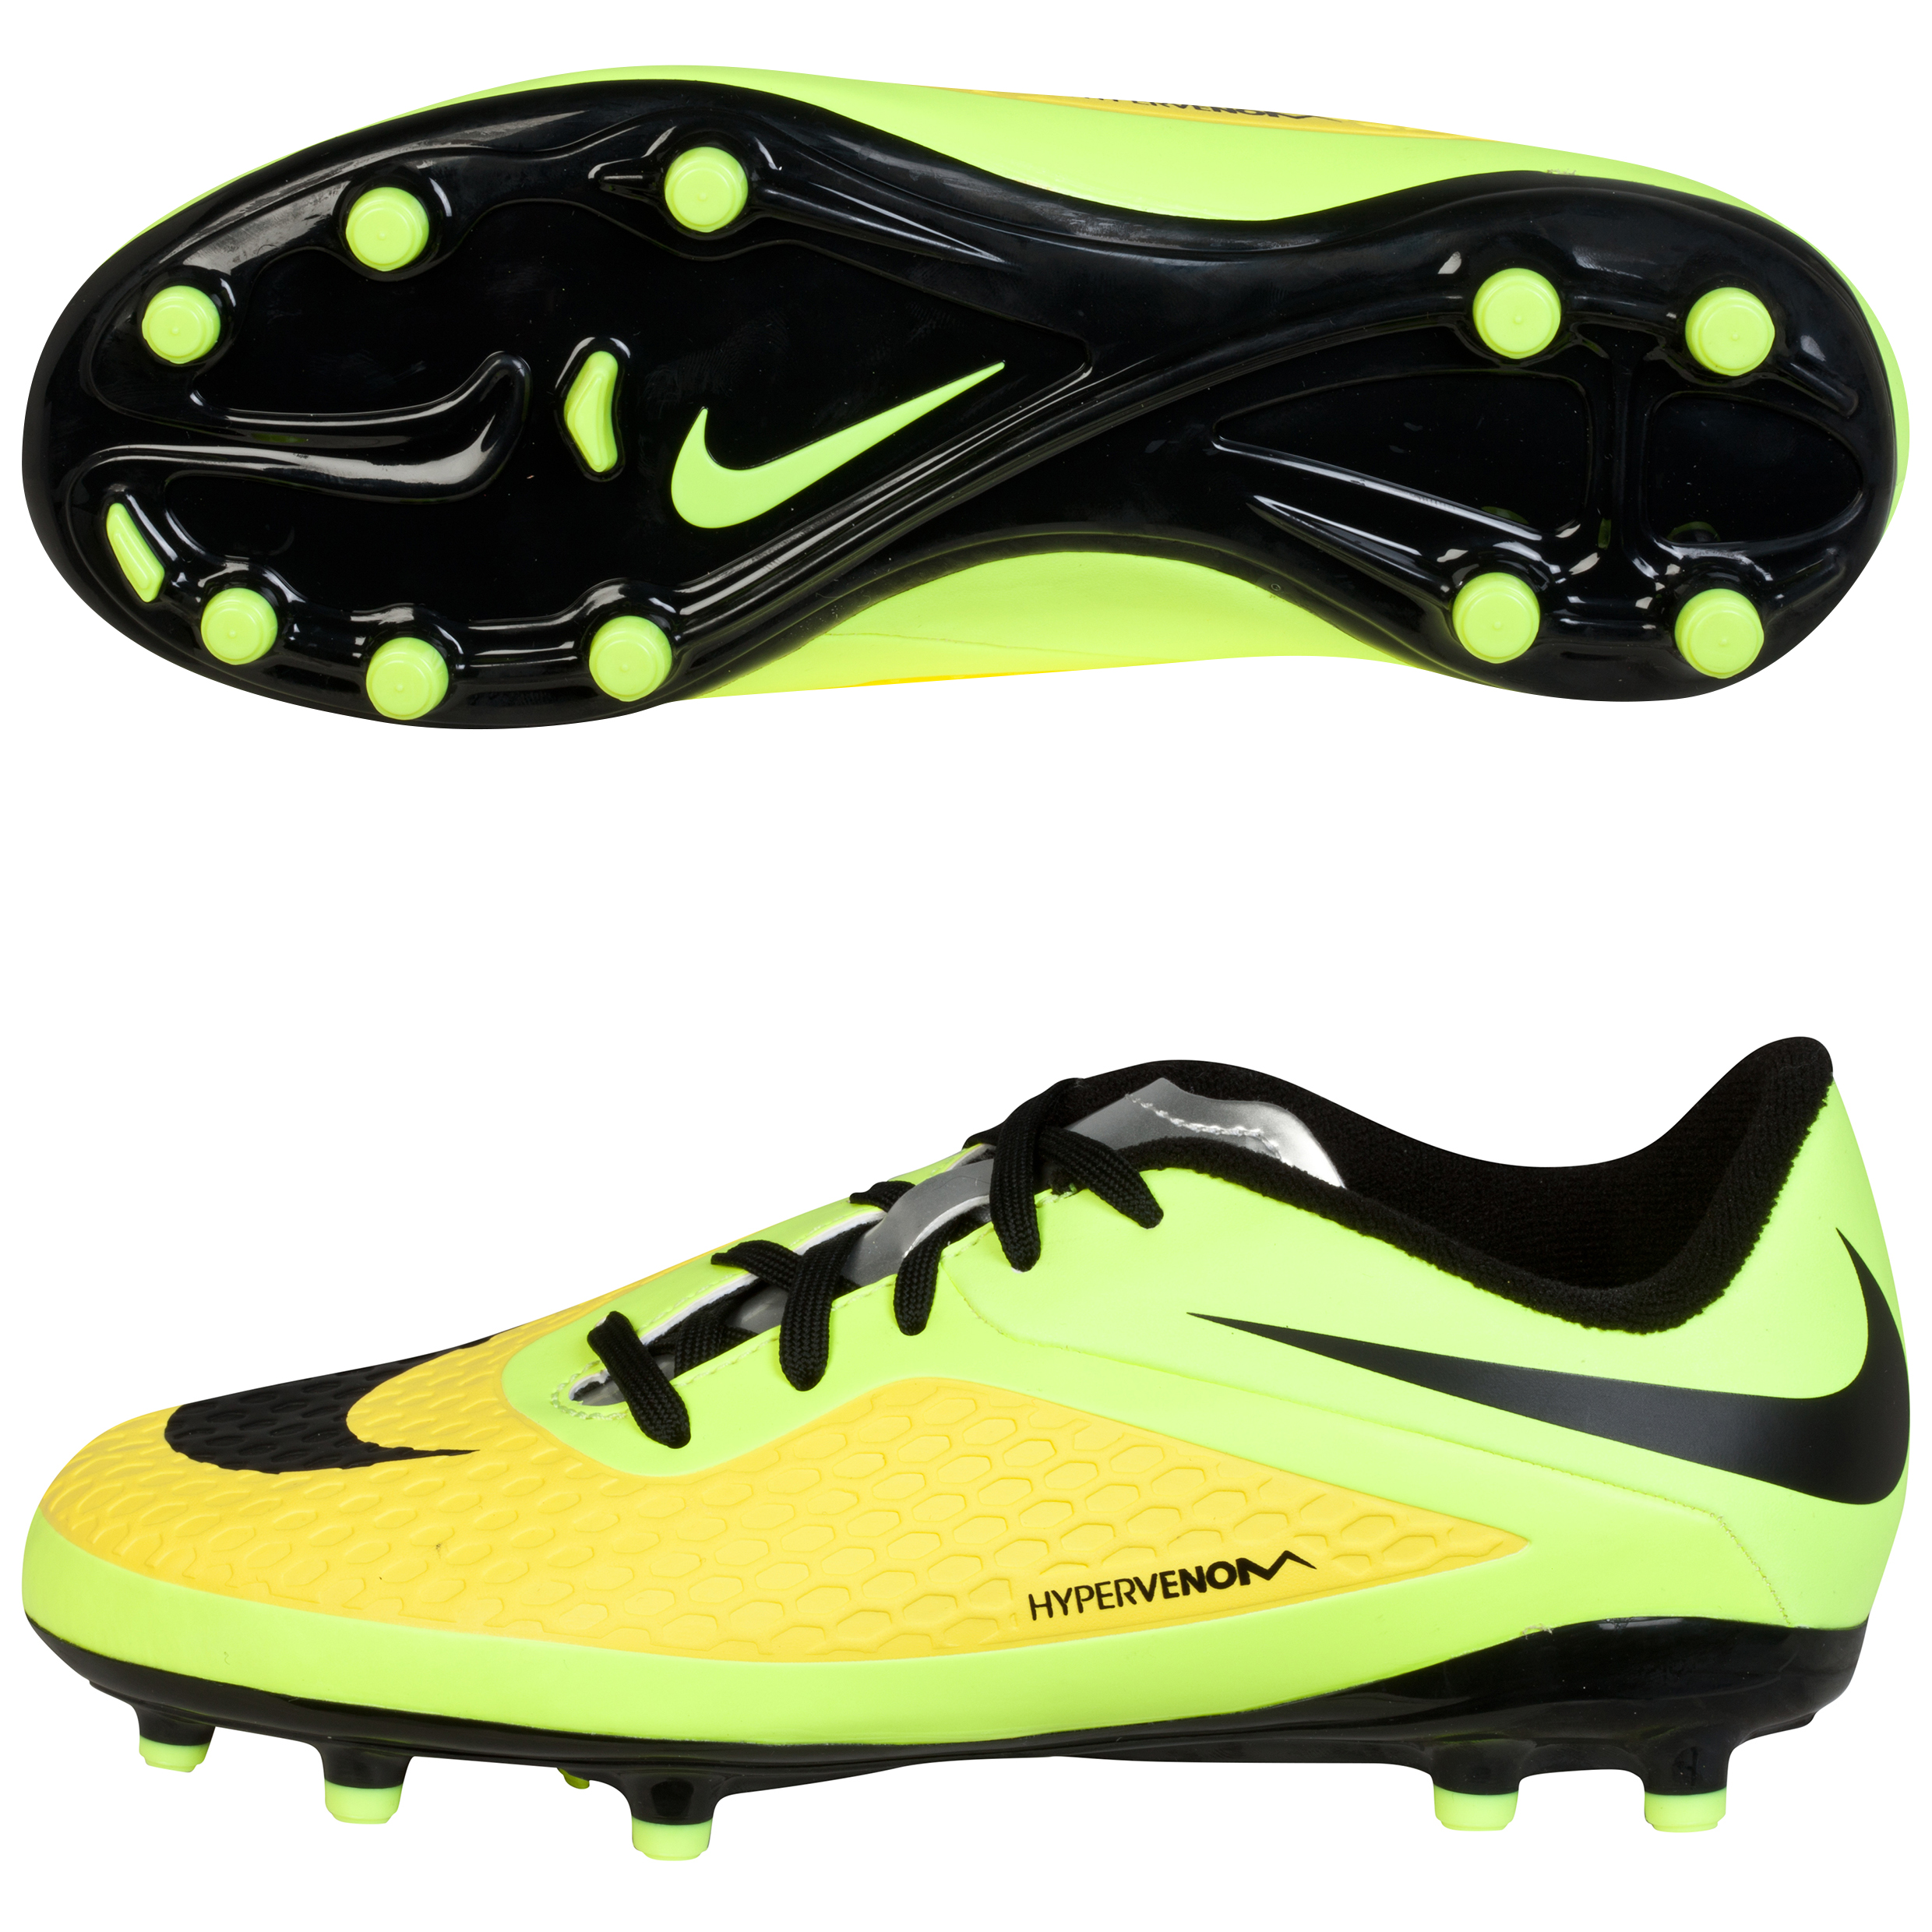 Nike Hypervenom Phelon FG Football Boots - Kids